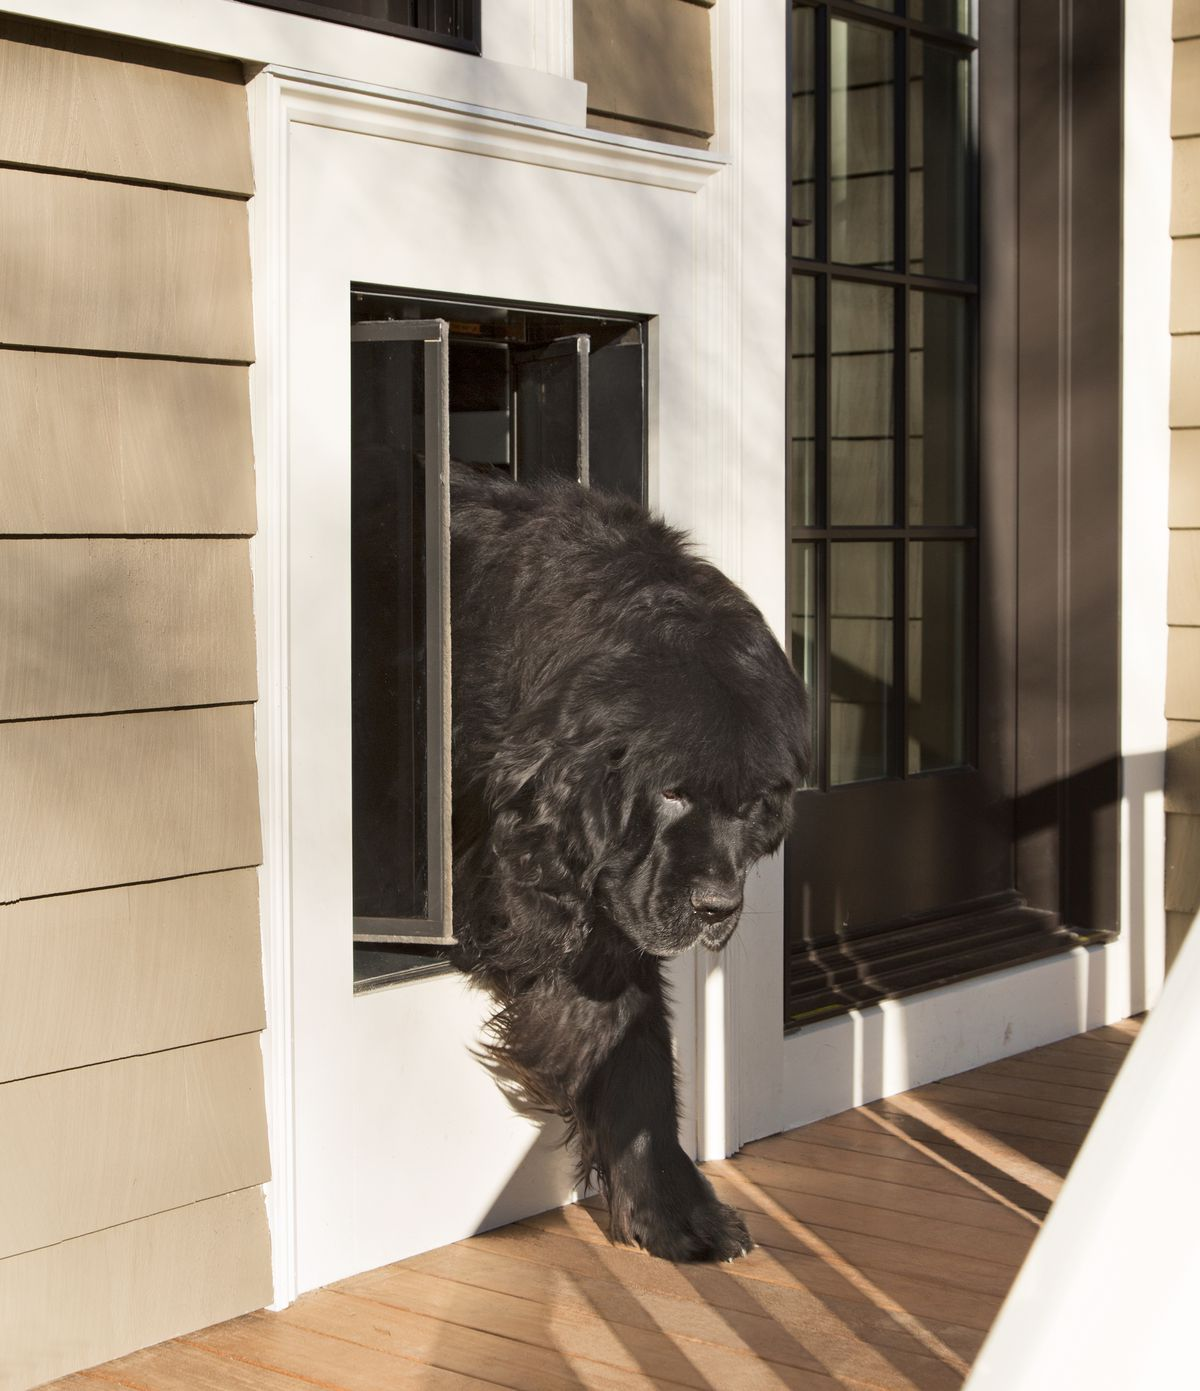 Dog walking through doggy door to the outside.